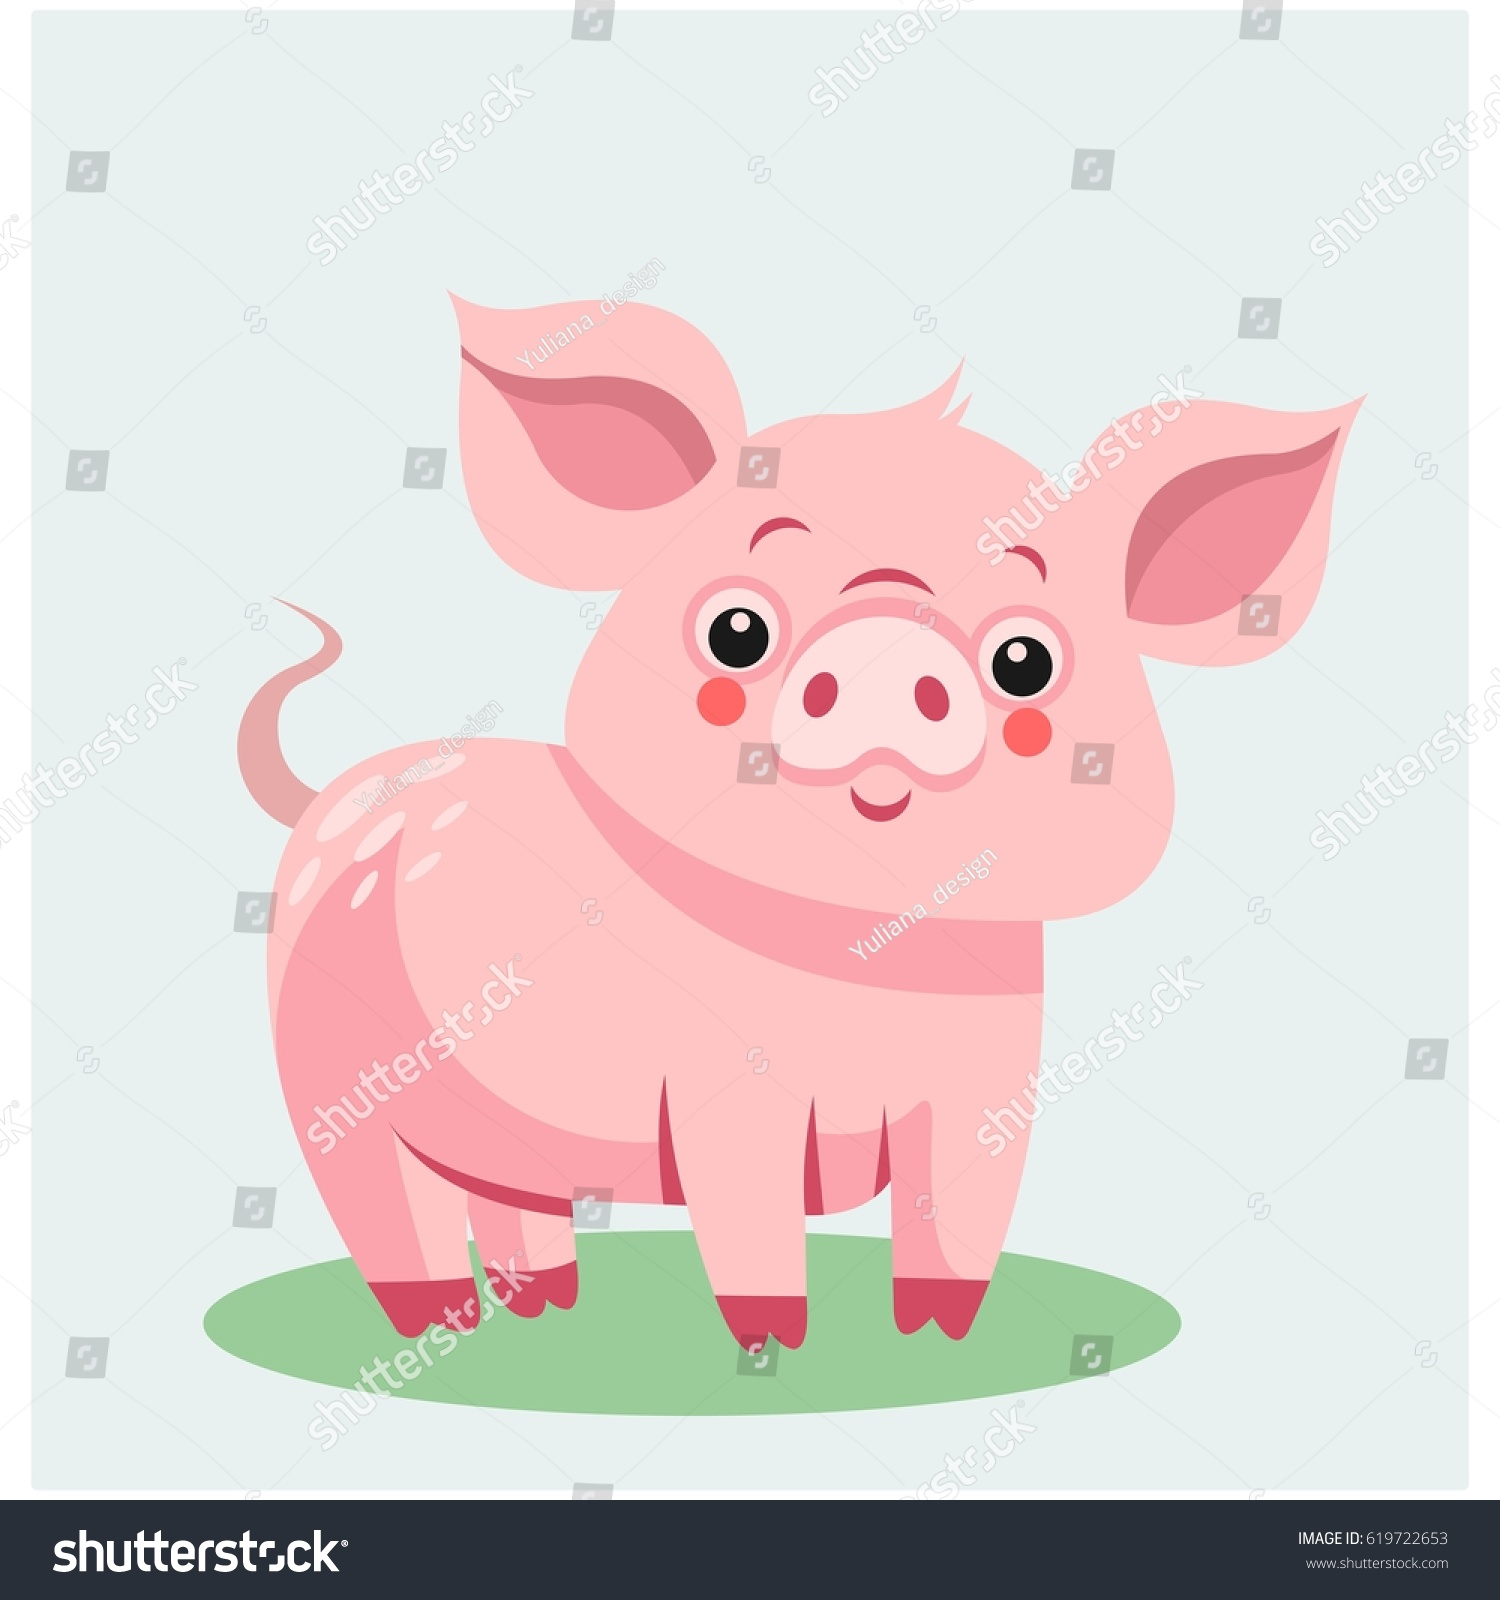 cute pink pig cartoon character animal ez canvas